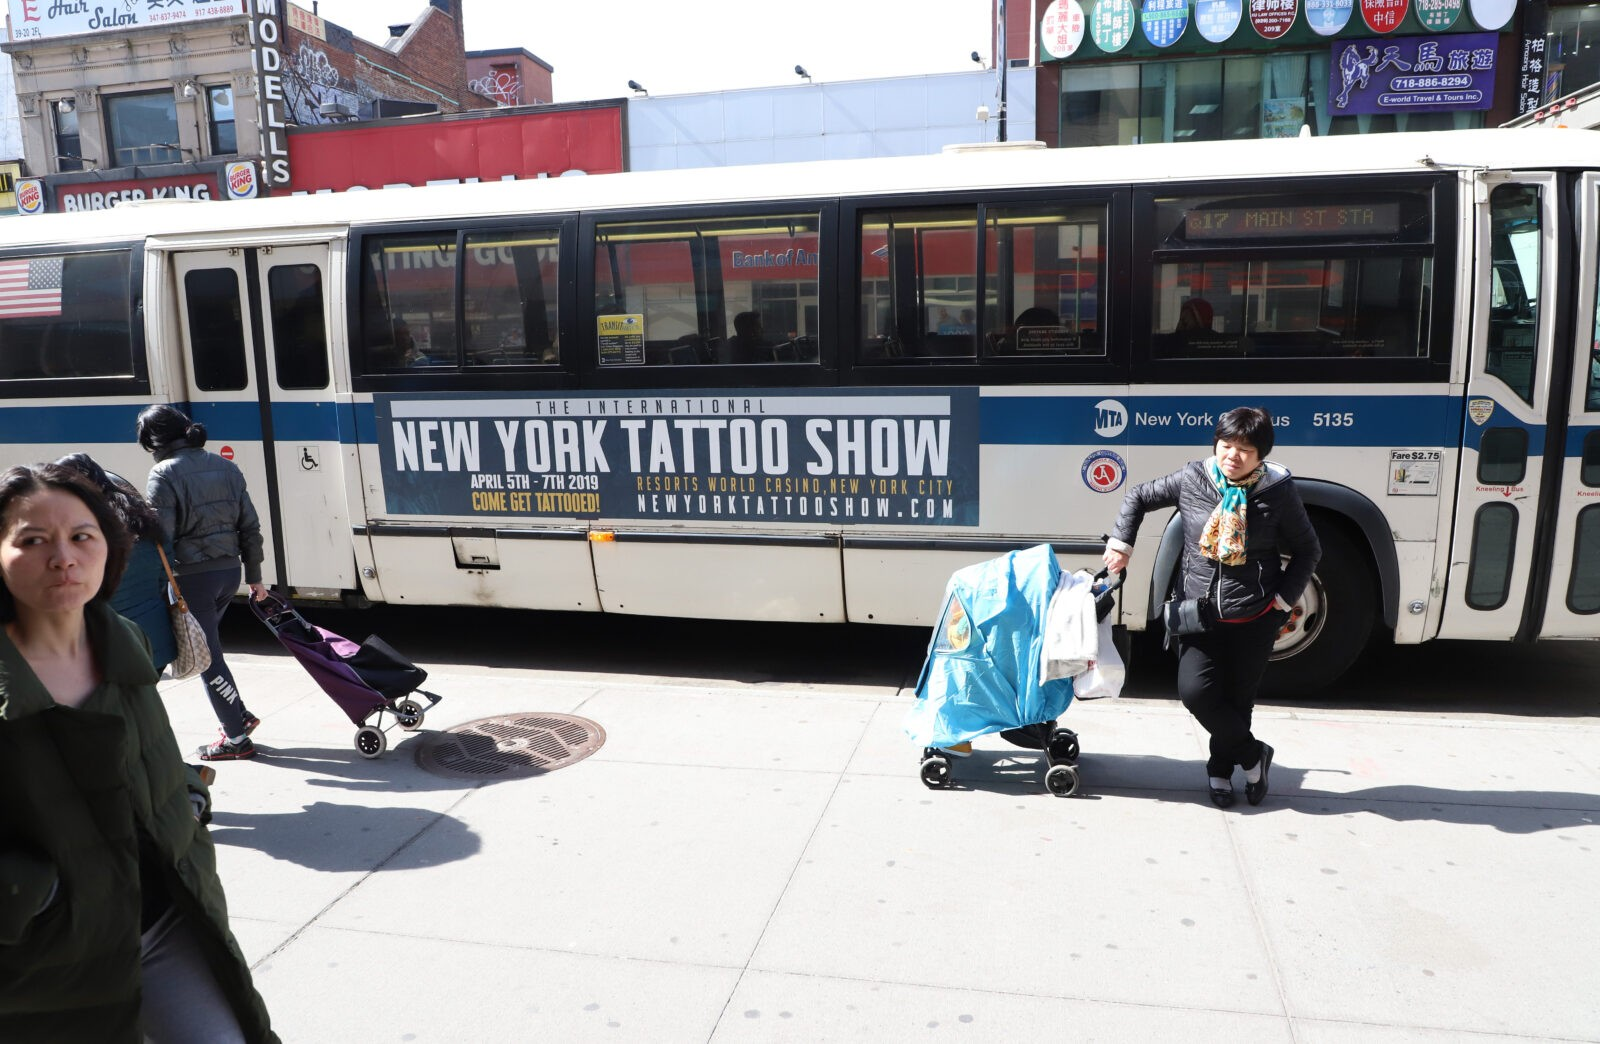 New York Tattoo Show Bus Exterior Advertising Campaign